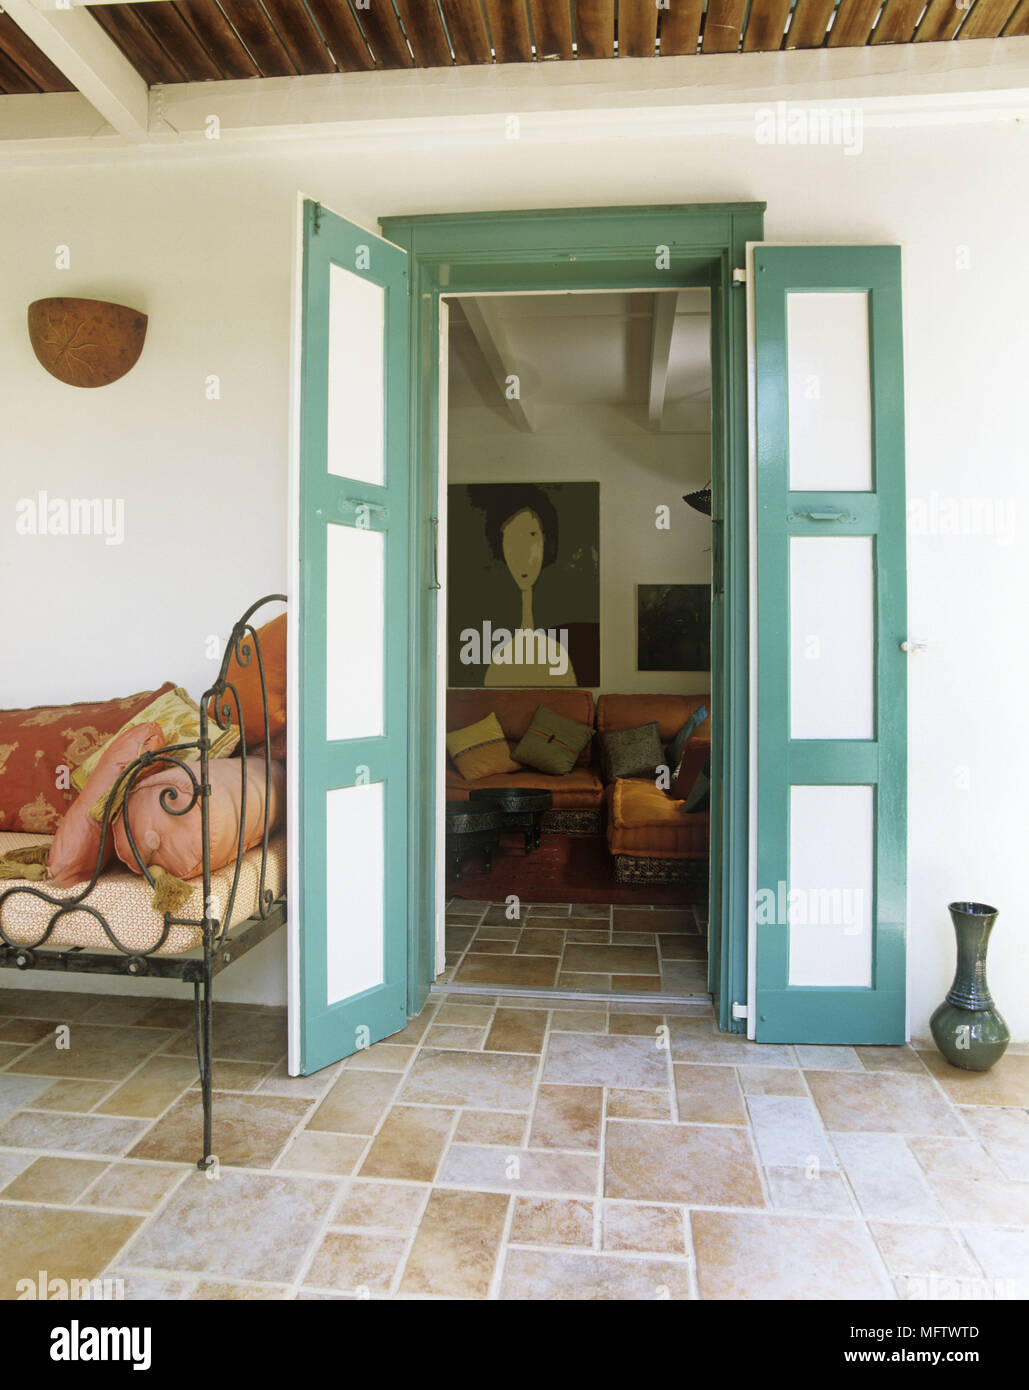 Details Of The Traditional Front Porch With Stone Floor View Through The Front  Door With Shutters.